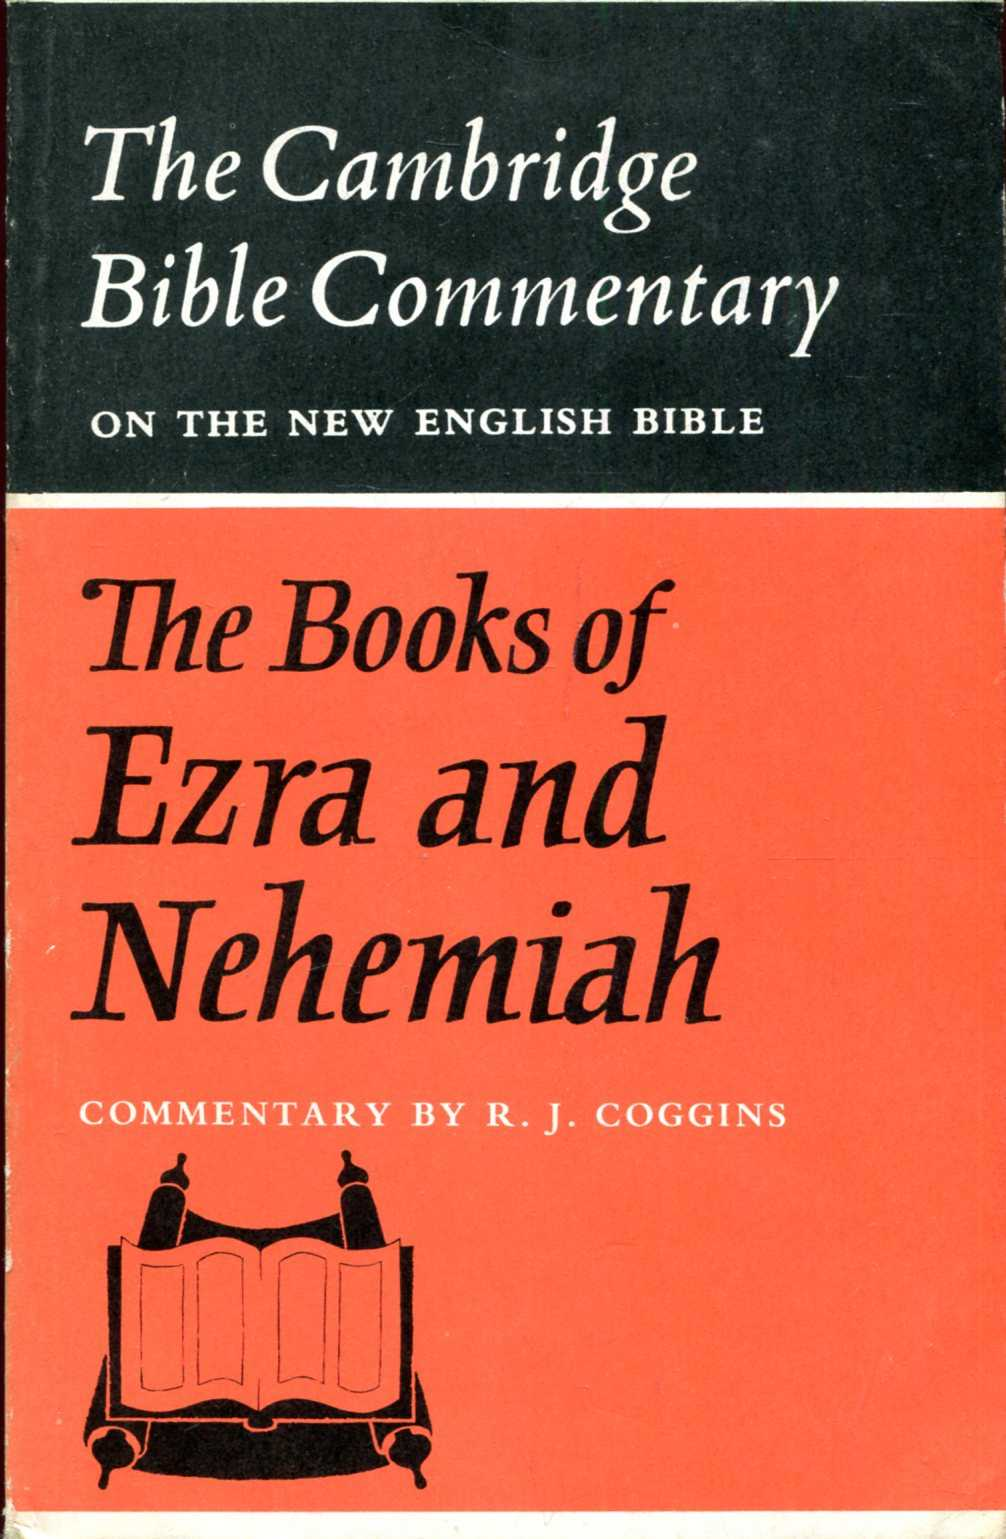 Image for Cambridge Bible Commentary on the New English Bible: The Books of Ezra and Nehemiah